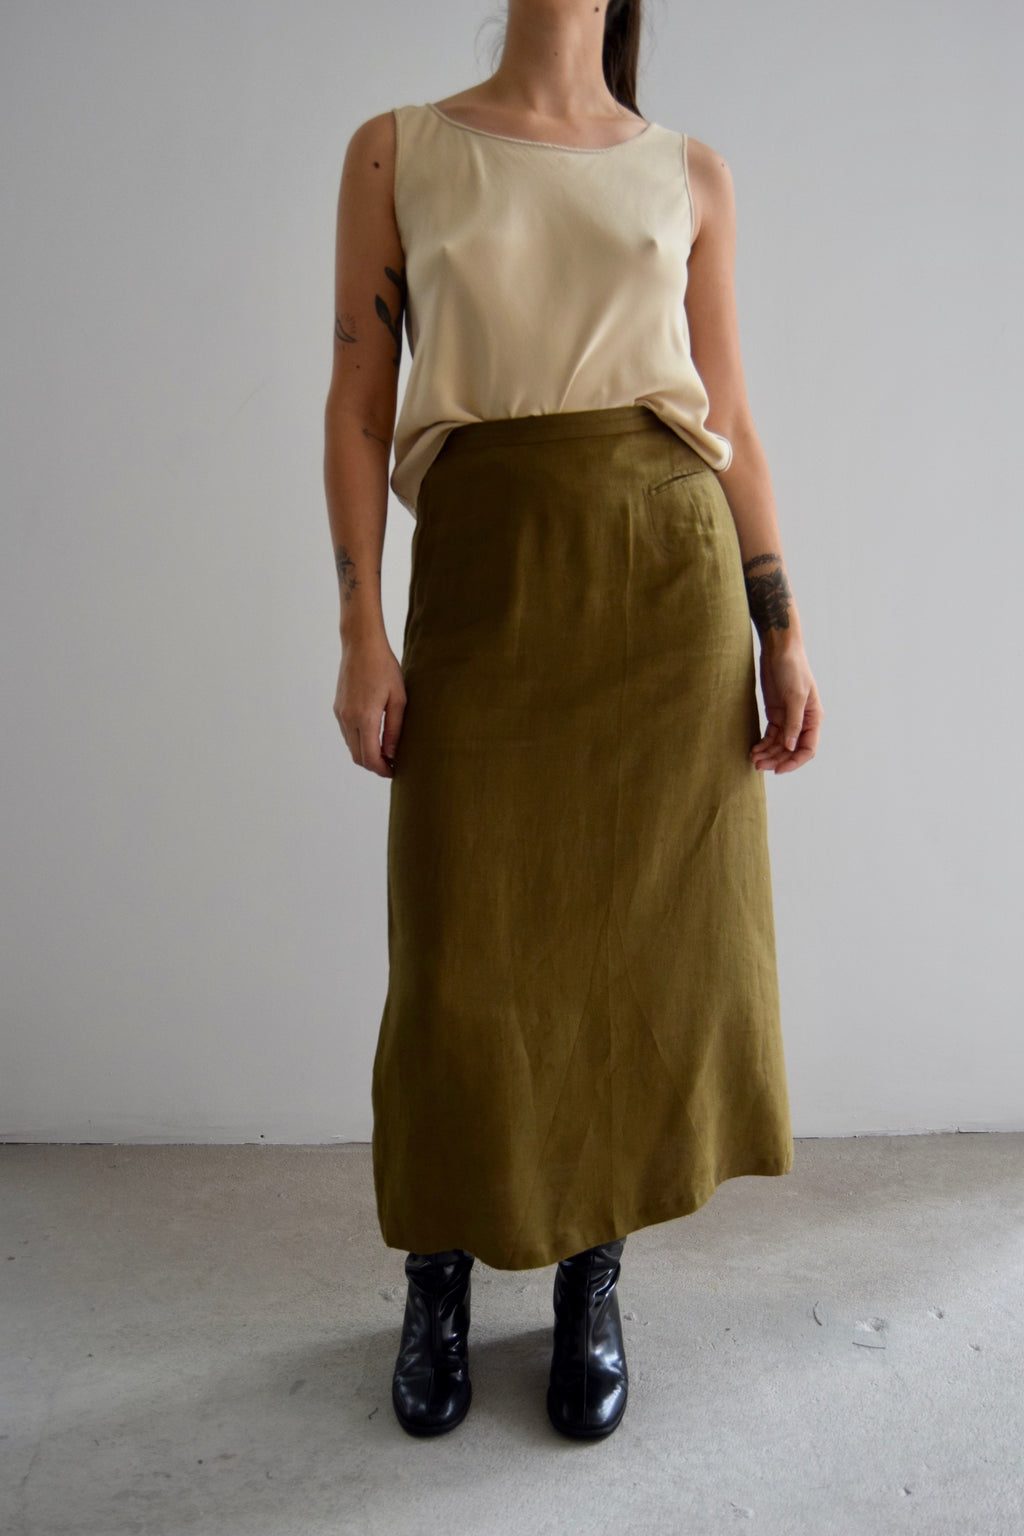 Vintage Olive Linen Long Skirt FREE SHIPPING TO THE U.S.